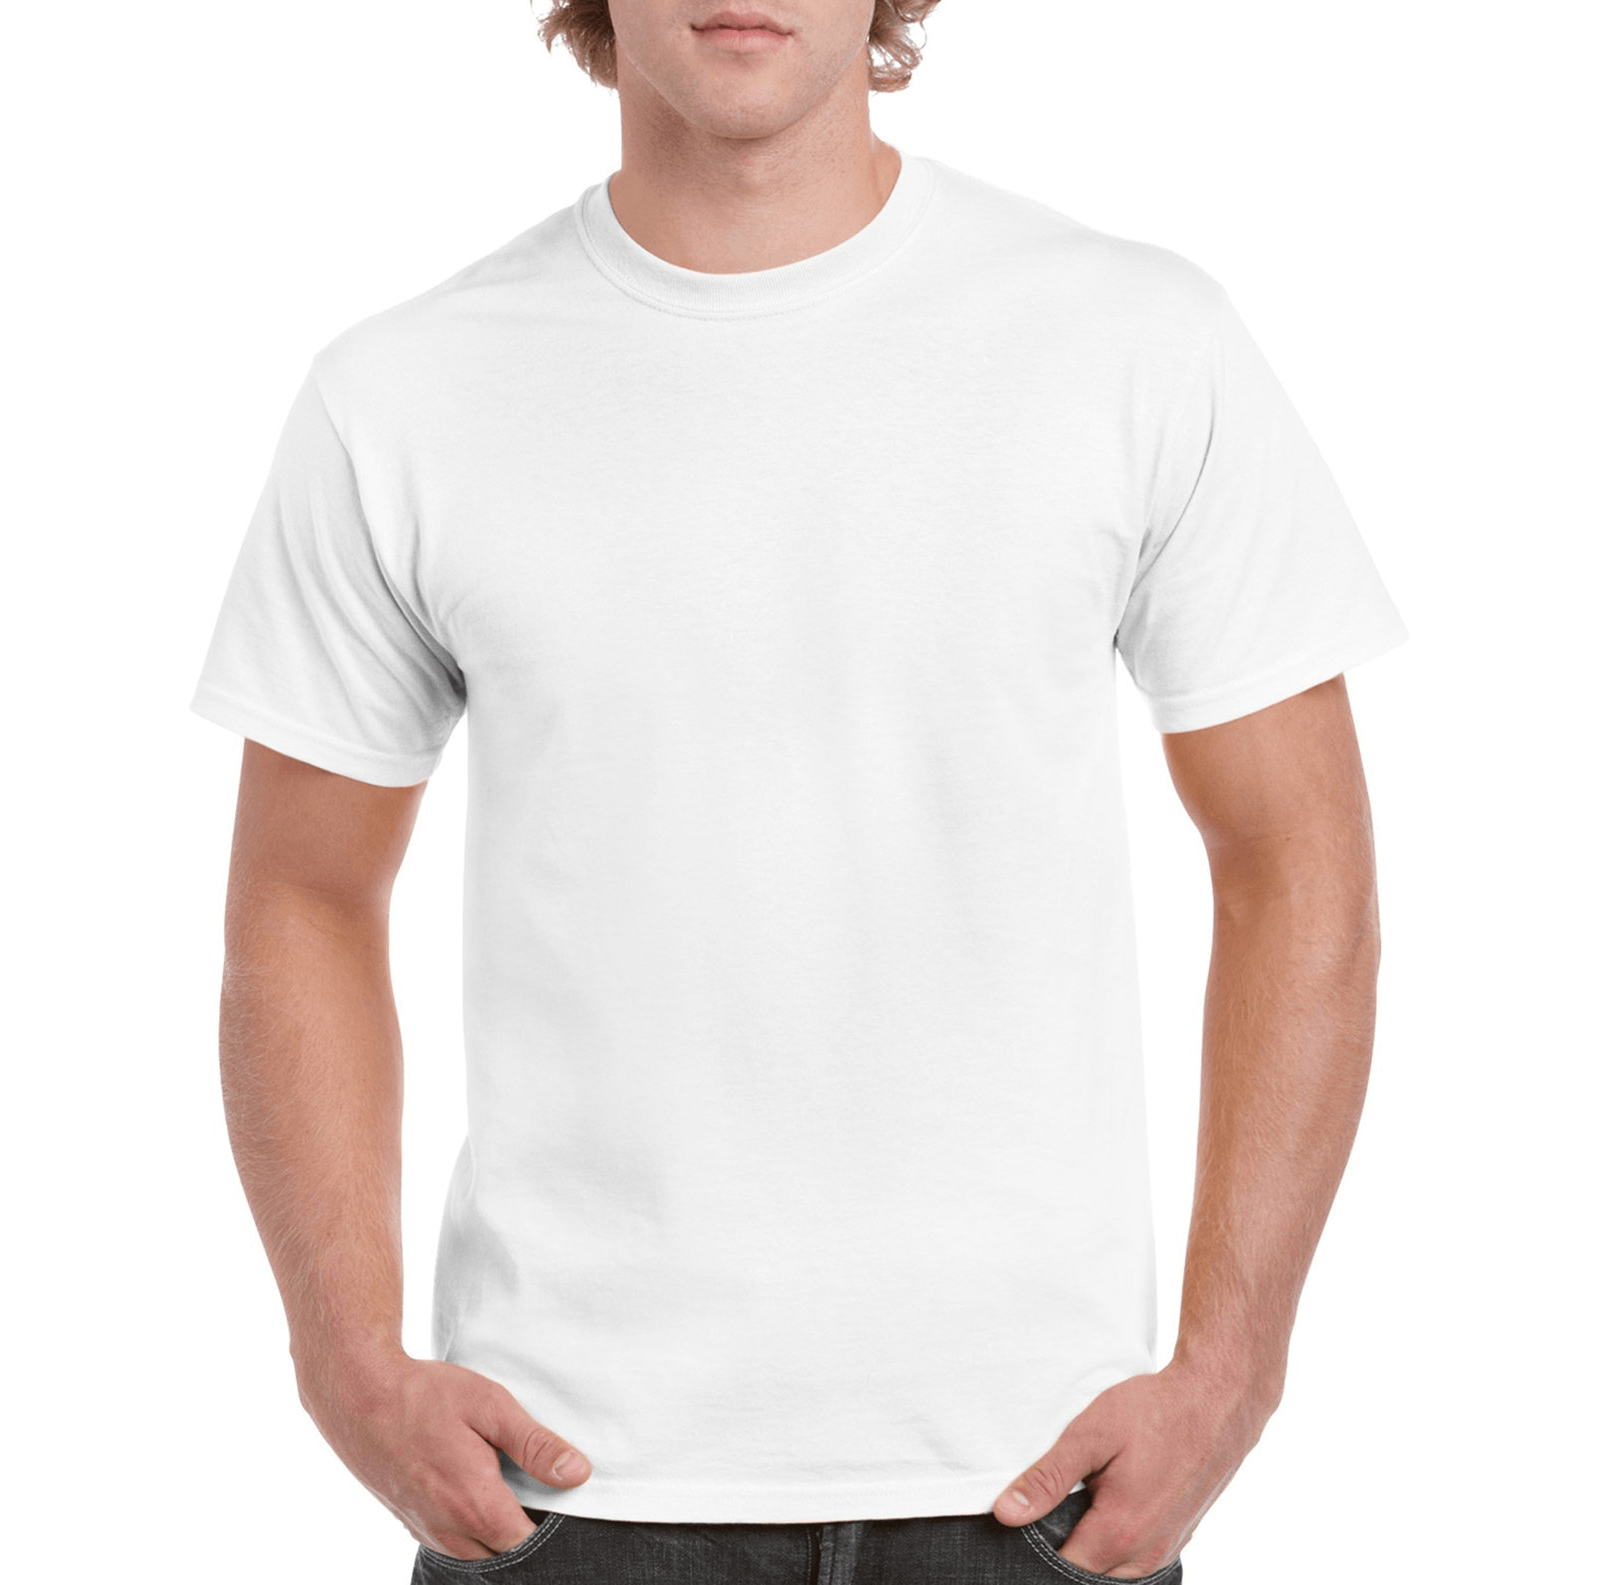 Plain short sleeve t shirts for sale at wholesale prices for American apparel plain t shirts bulk